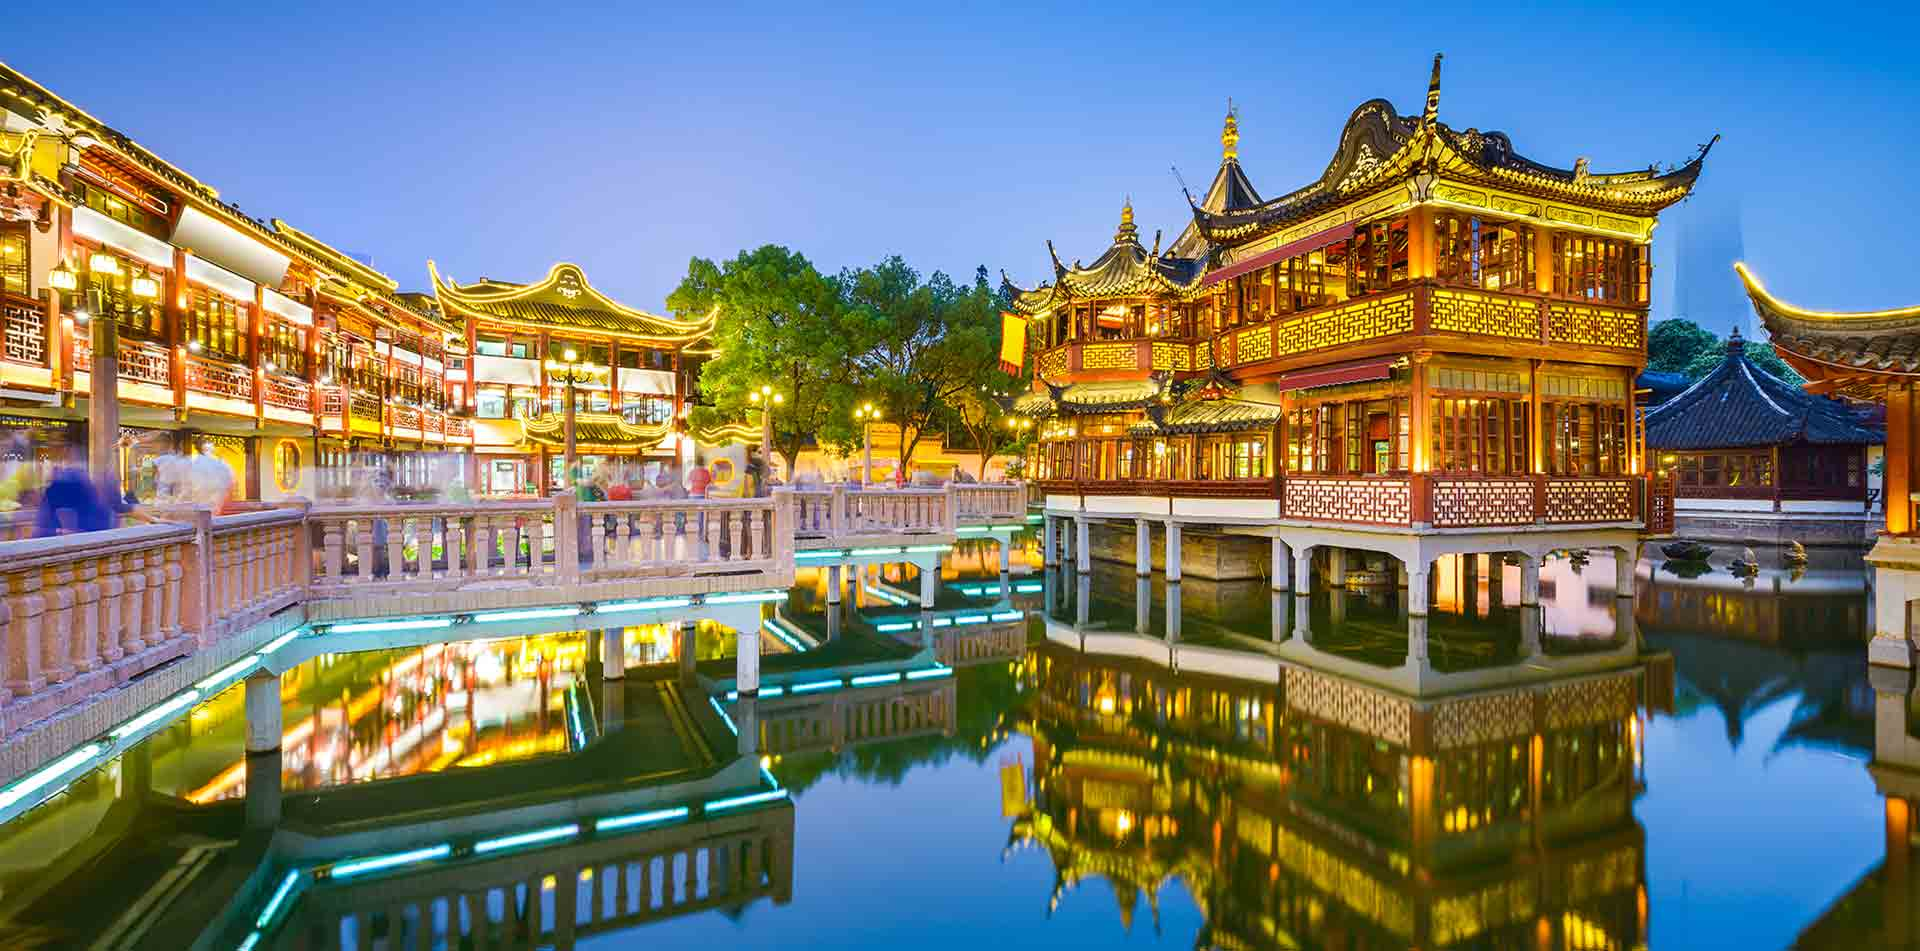 Asia China Shanghai traditional Chinese courtyard with temples at nighttime - luxury vacation destinations